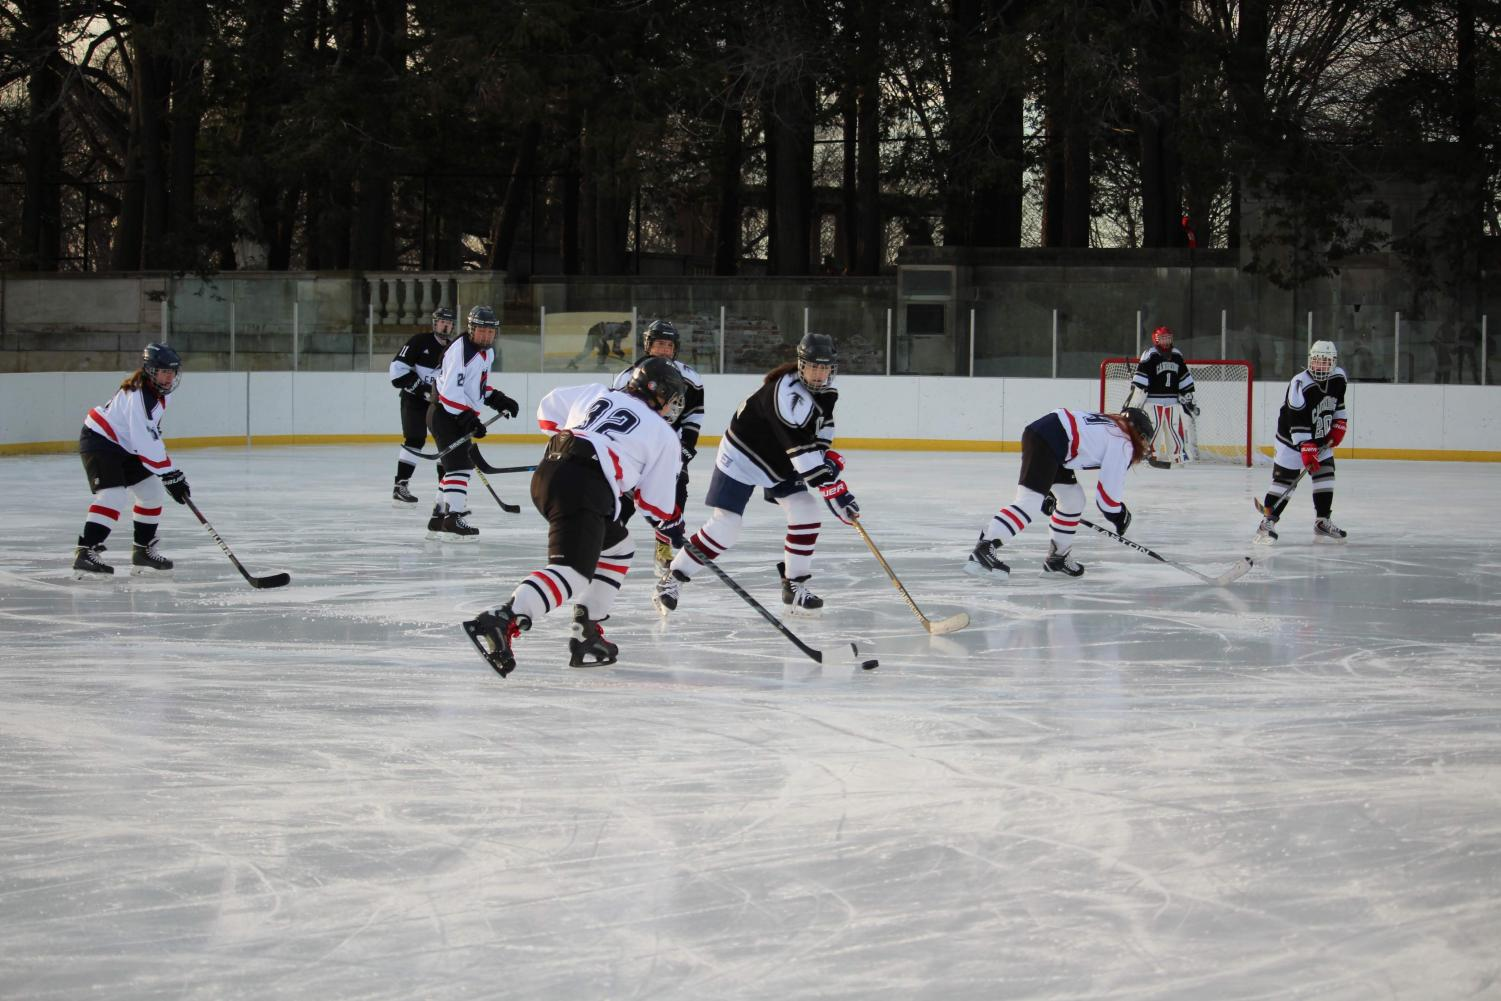 The girls junior varsity team plays Cambridge Rindge and Latin High School at Larz Anderson Park. The Warriors won the game with a final score of 9-5.